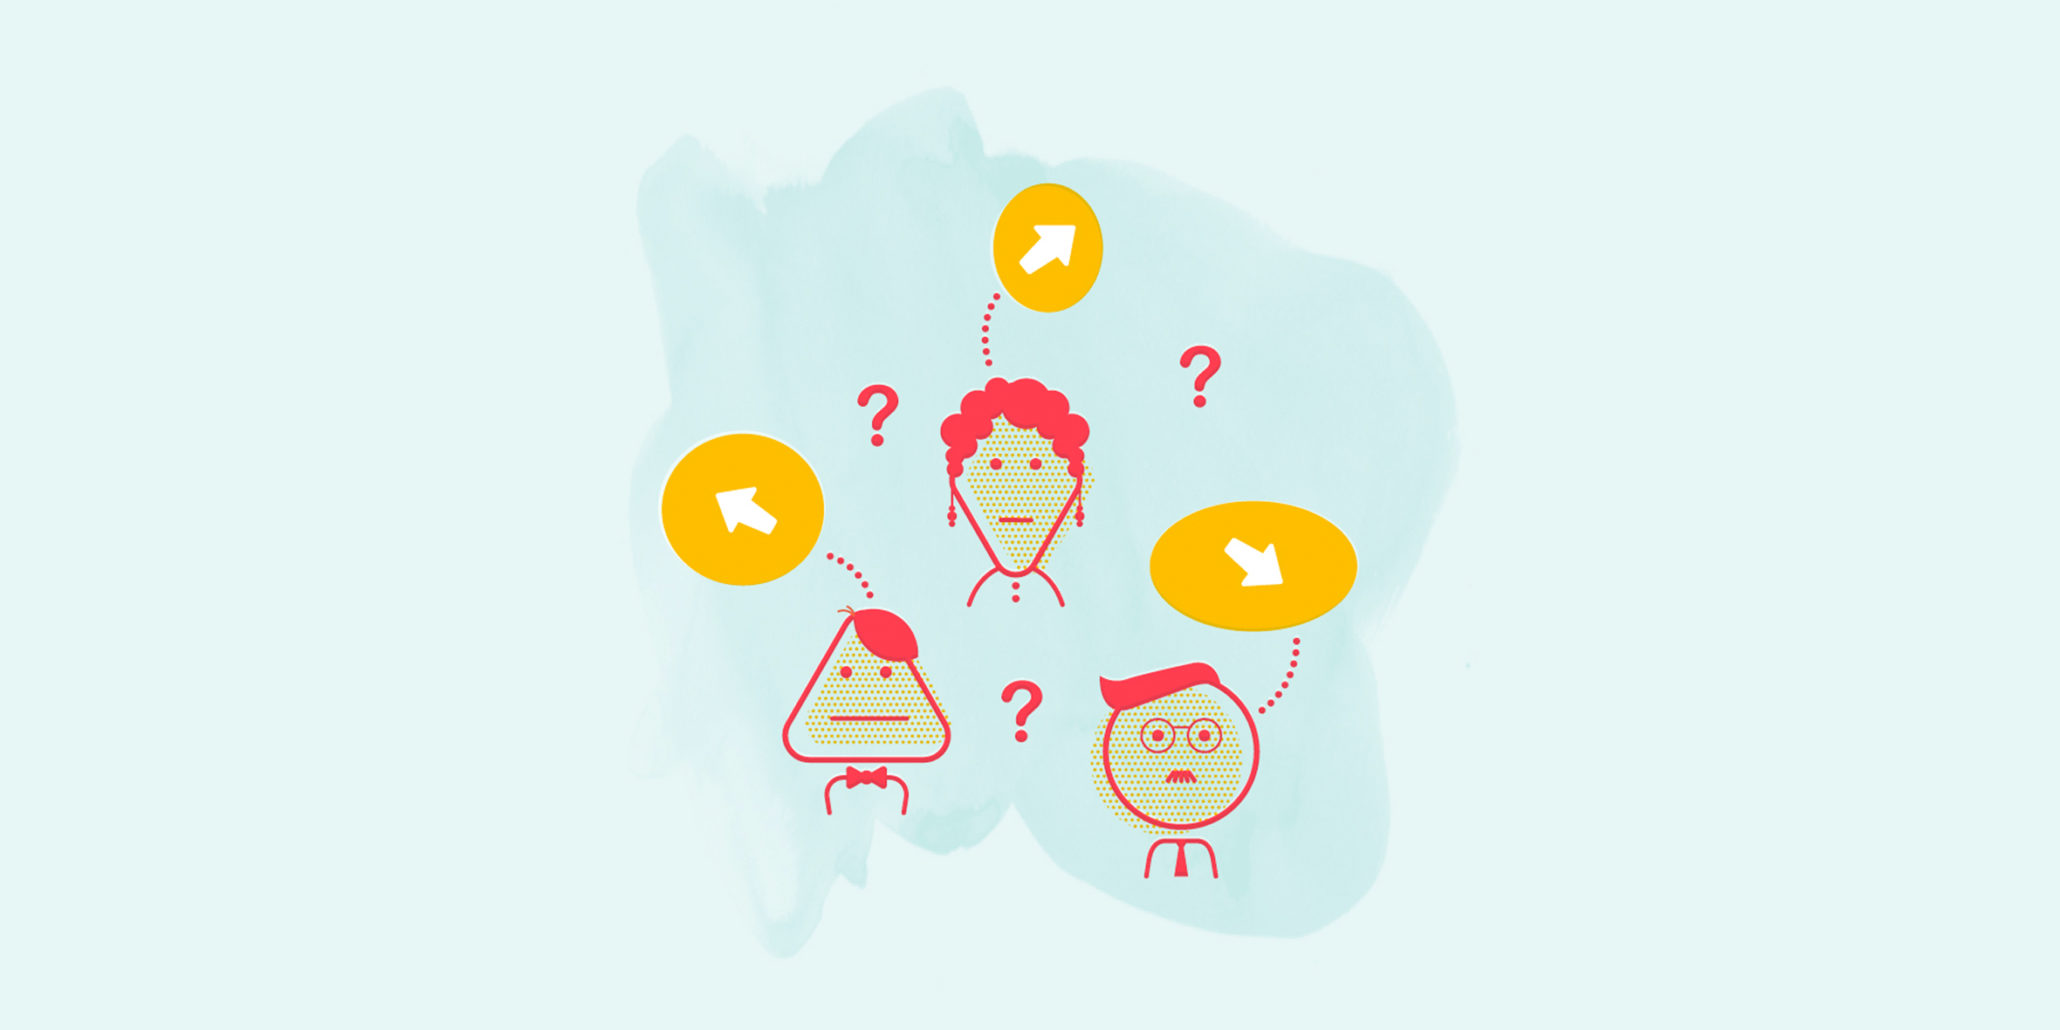 illustration of people who look confused with question marks